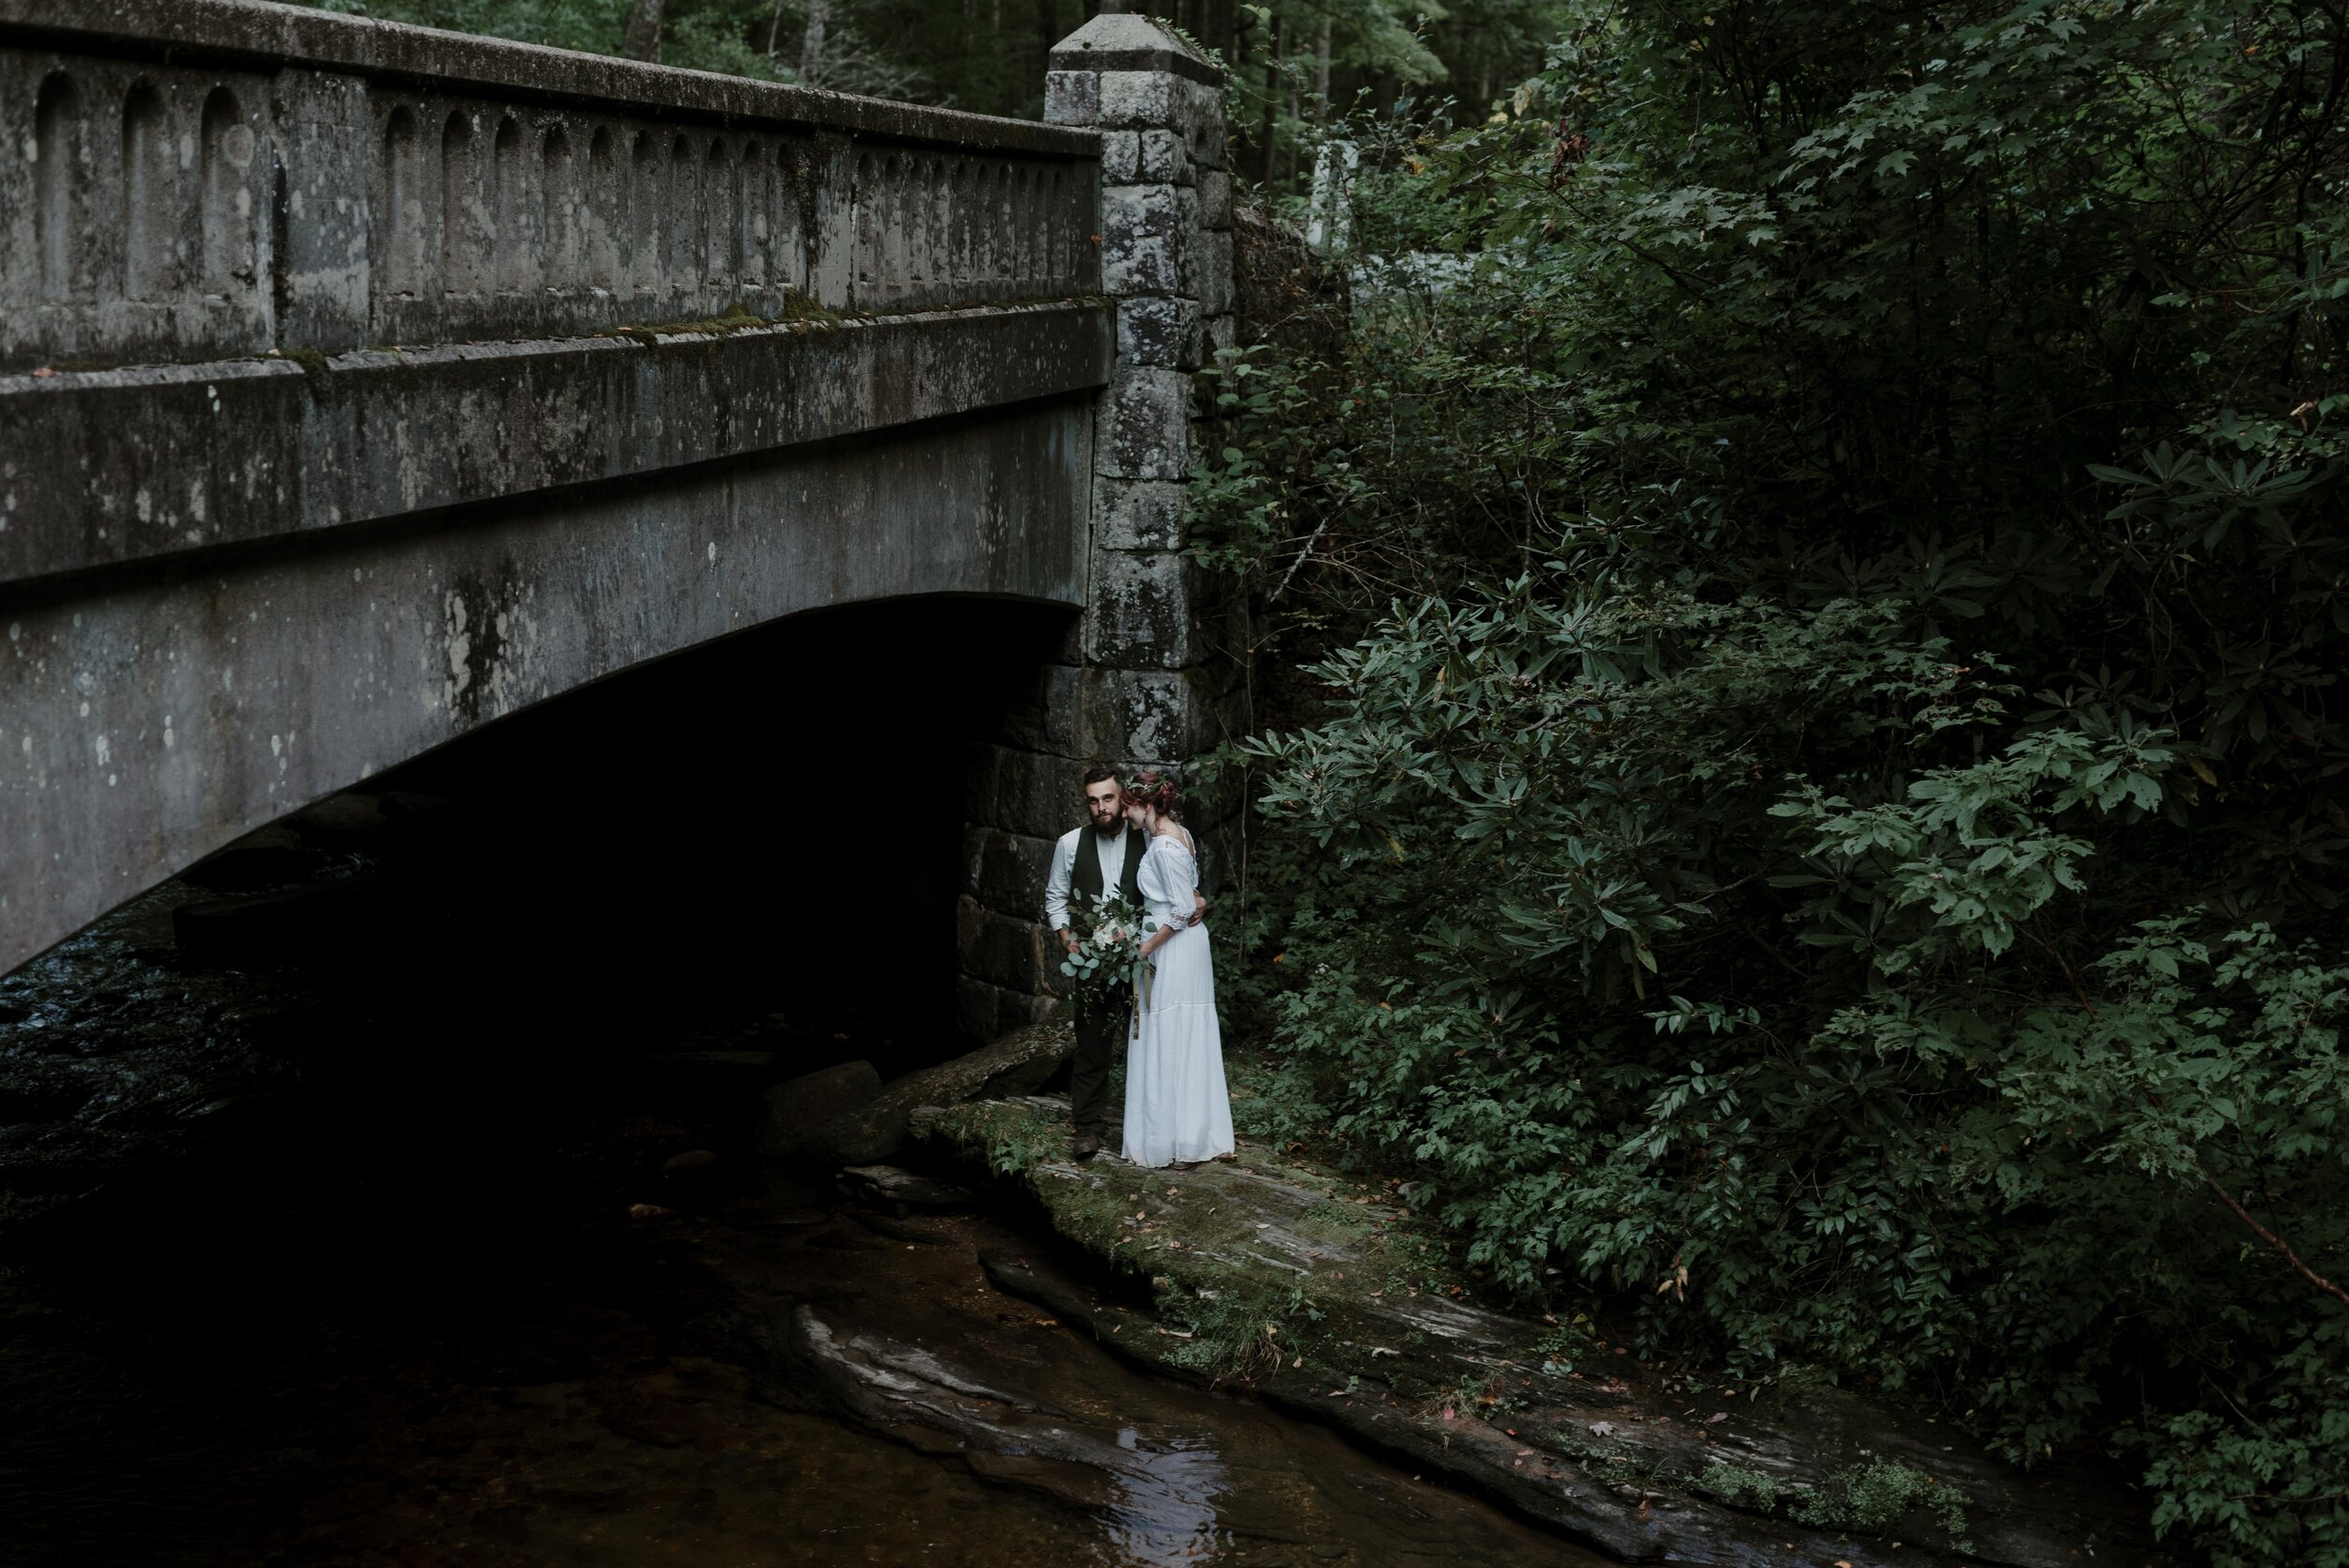 Blue_Ridge_Parkway_Elopement_Michelle&CrosbyDSC_7457-Edit.jpg